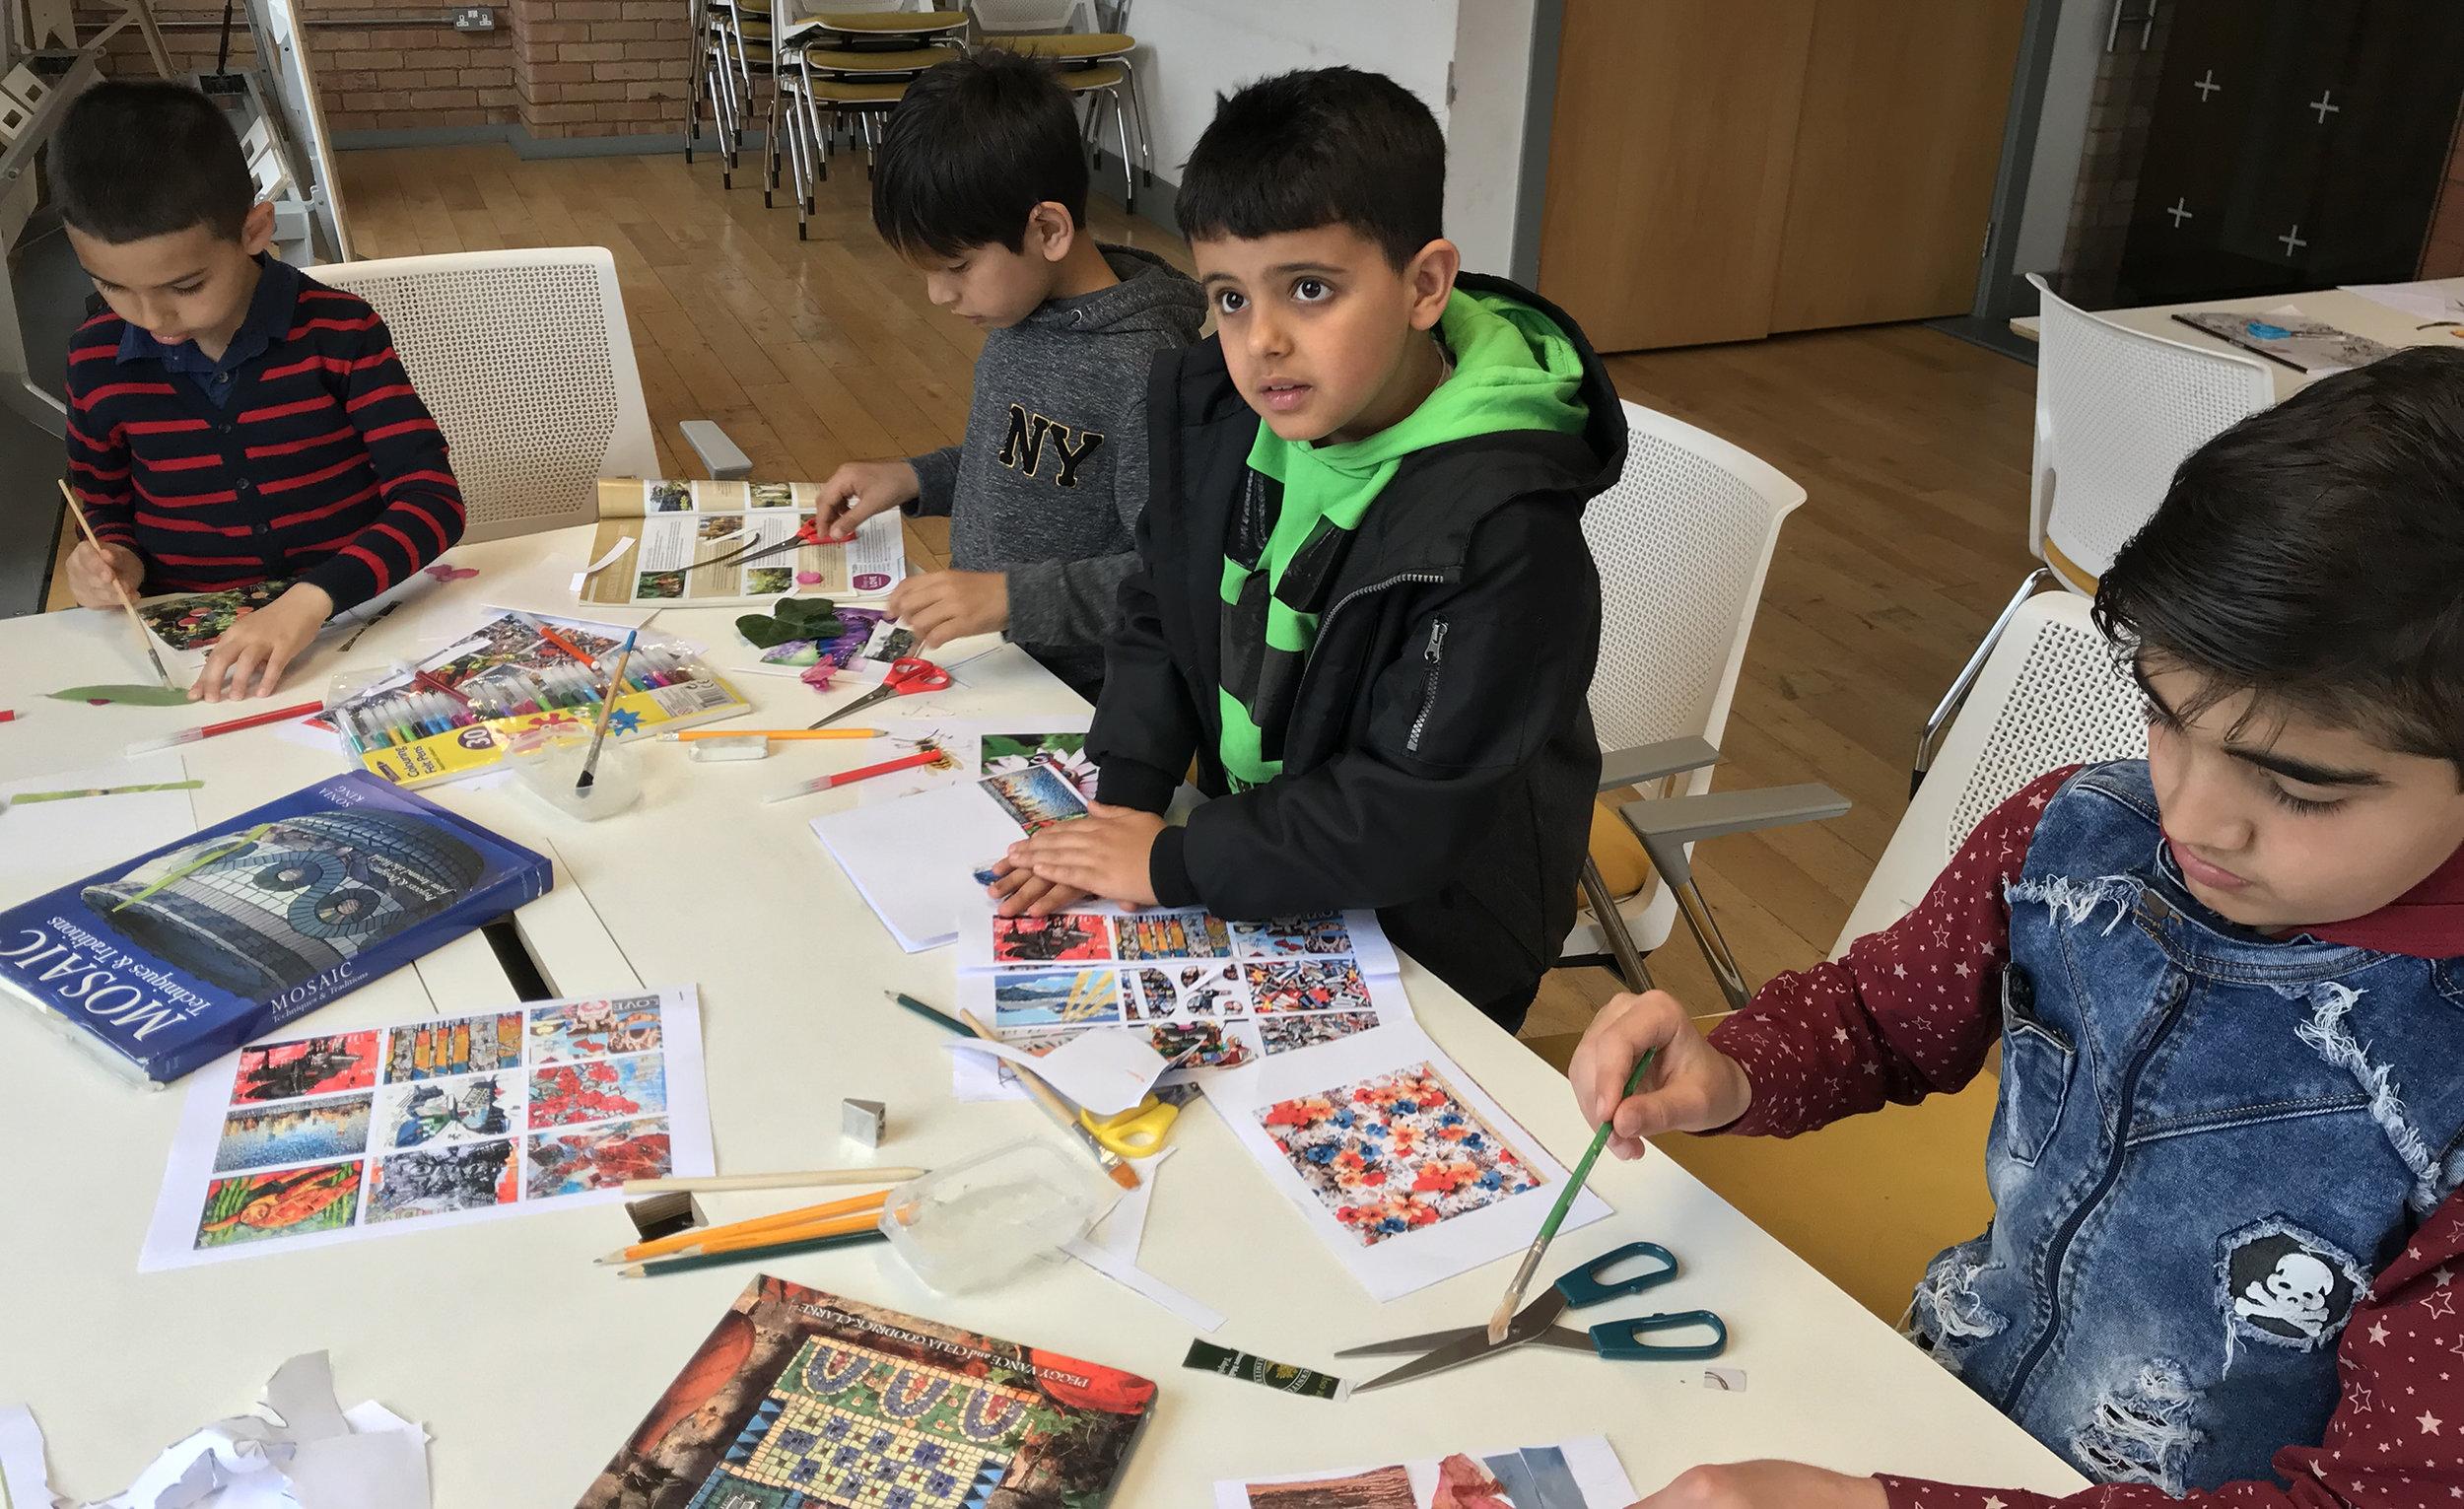 Children taking part in the Amal Project Art Workshop at the Birmingham City Council Activity Day for Syrian Refugees on 15th June 2019.